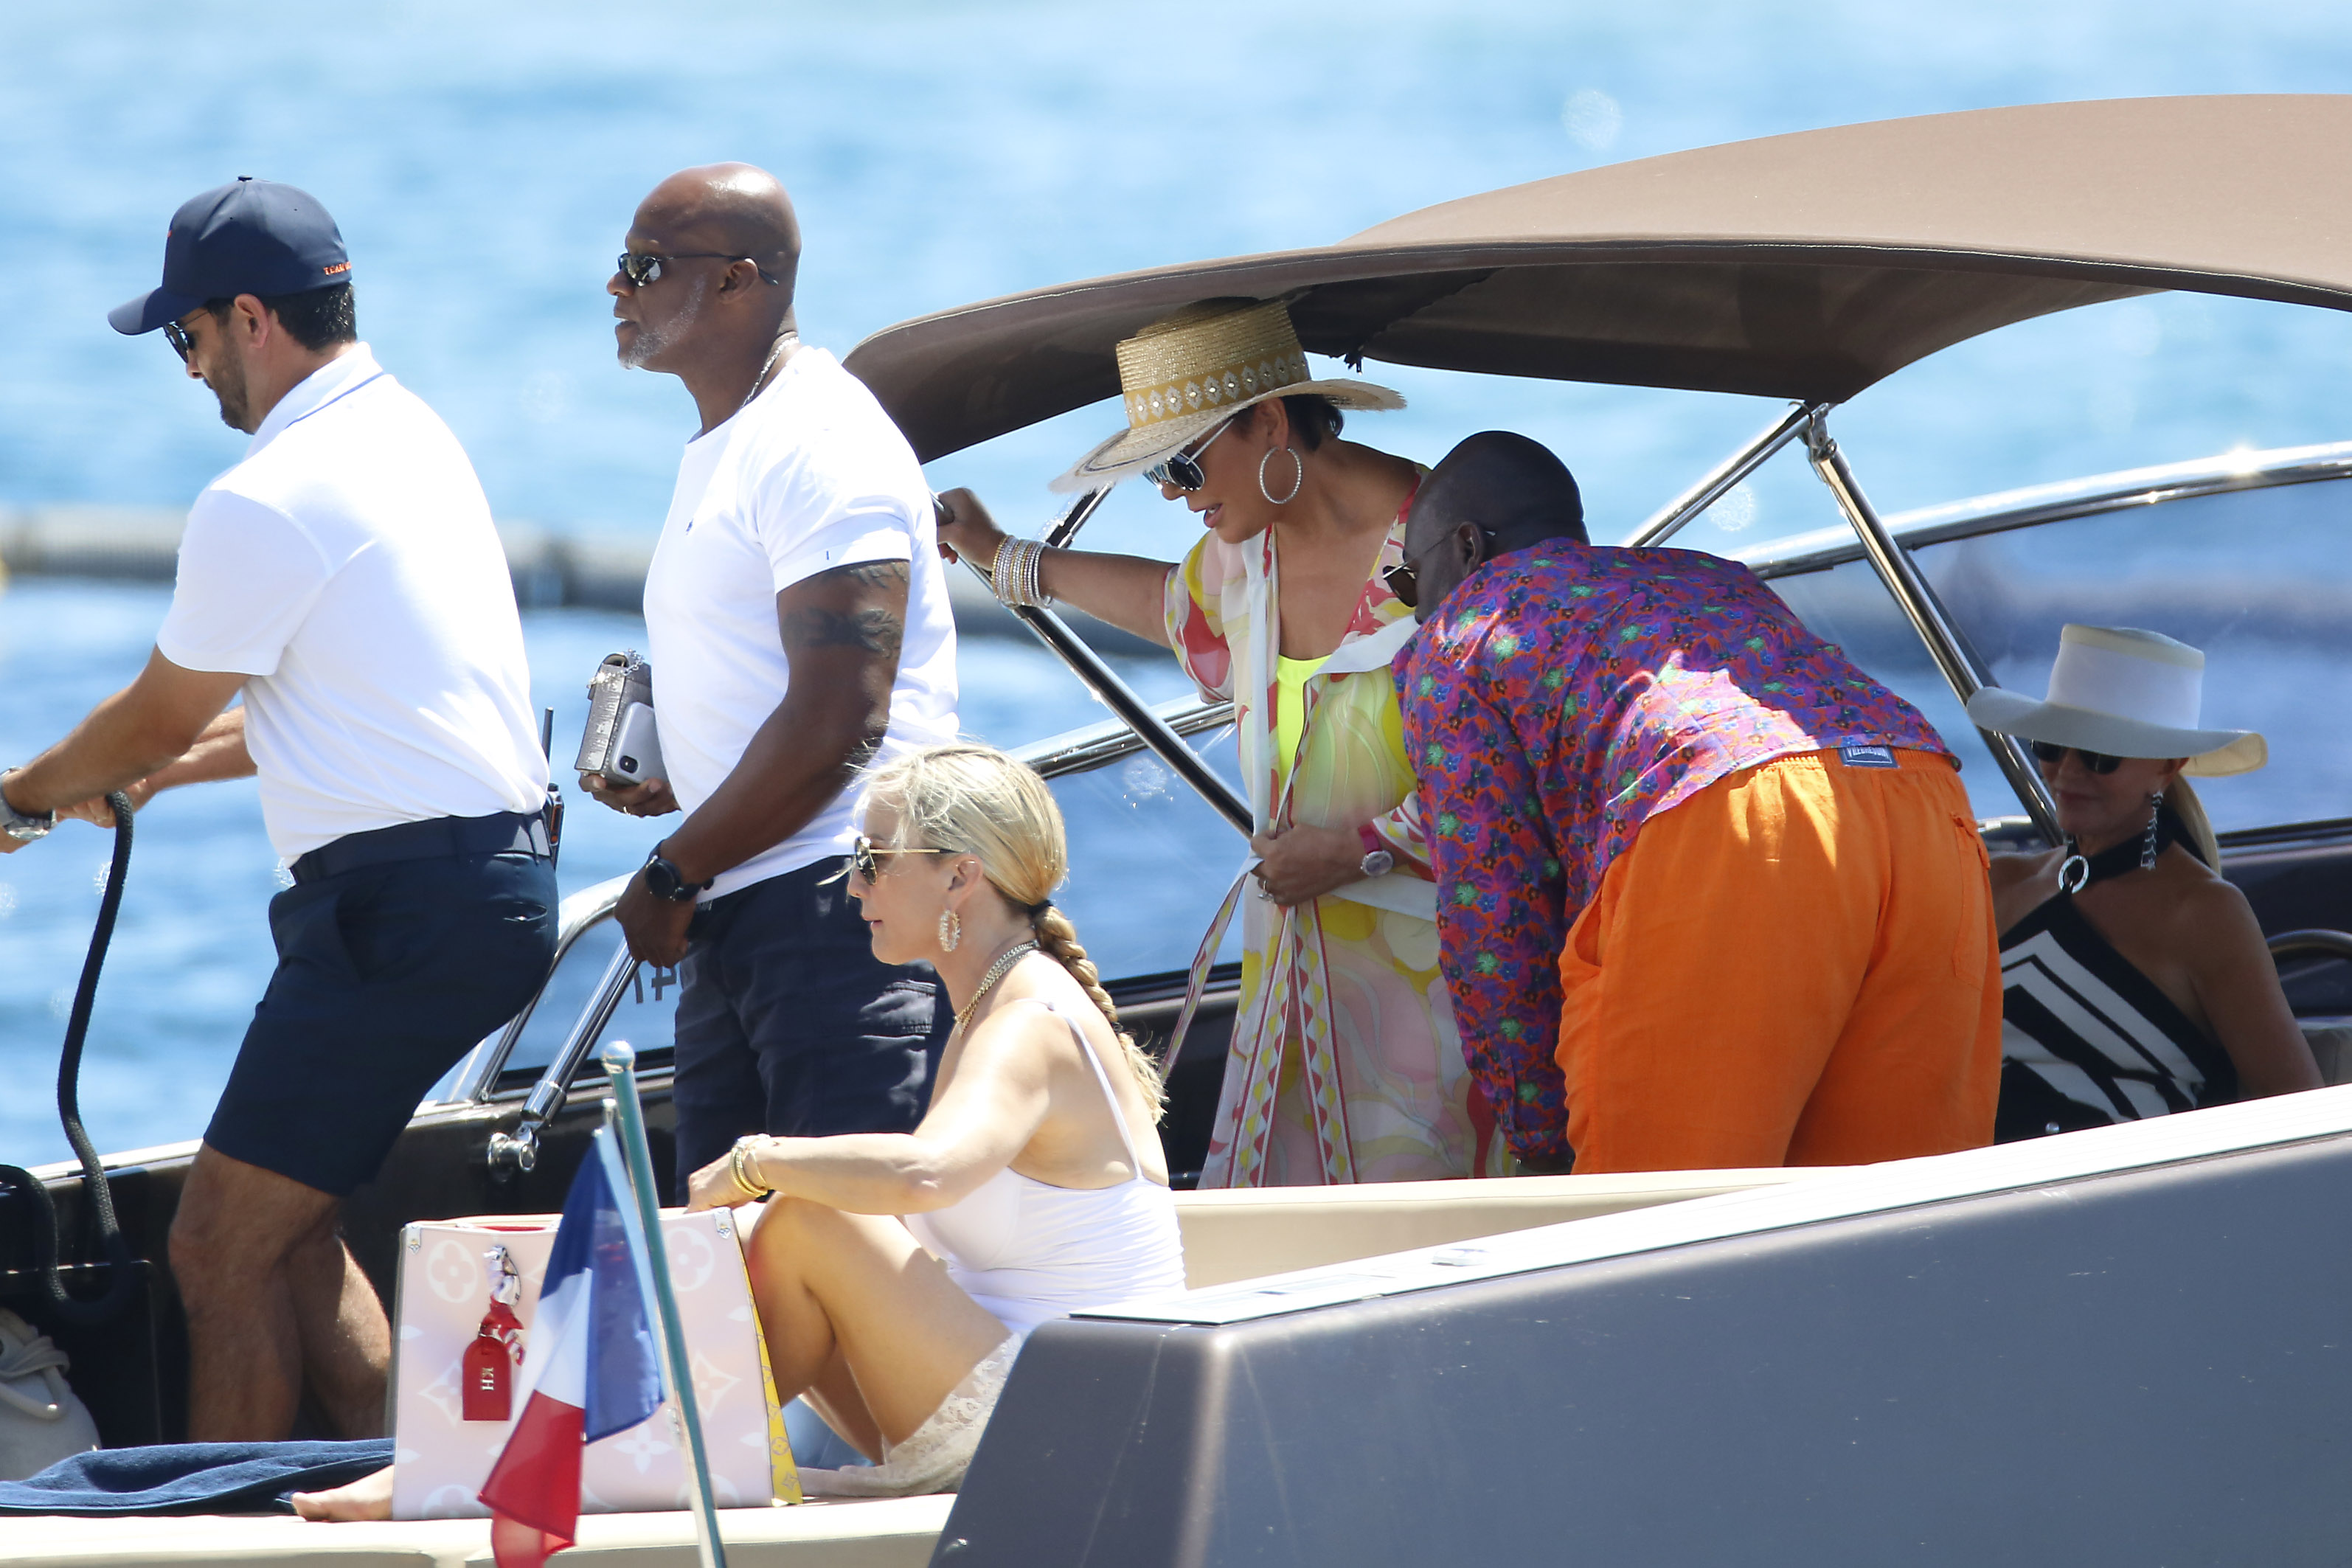 Girl with big ass on boat Corey Got A Big Ol Butt Kris Jenner And Her Heavy Hipped Honey Swirl It Up In The South Of France Bossip